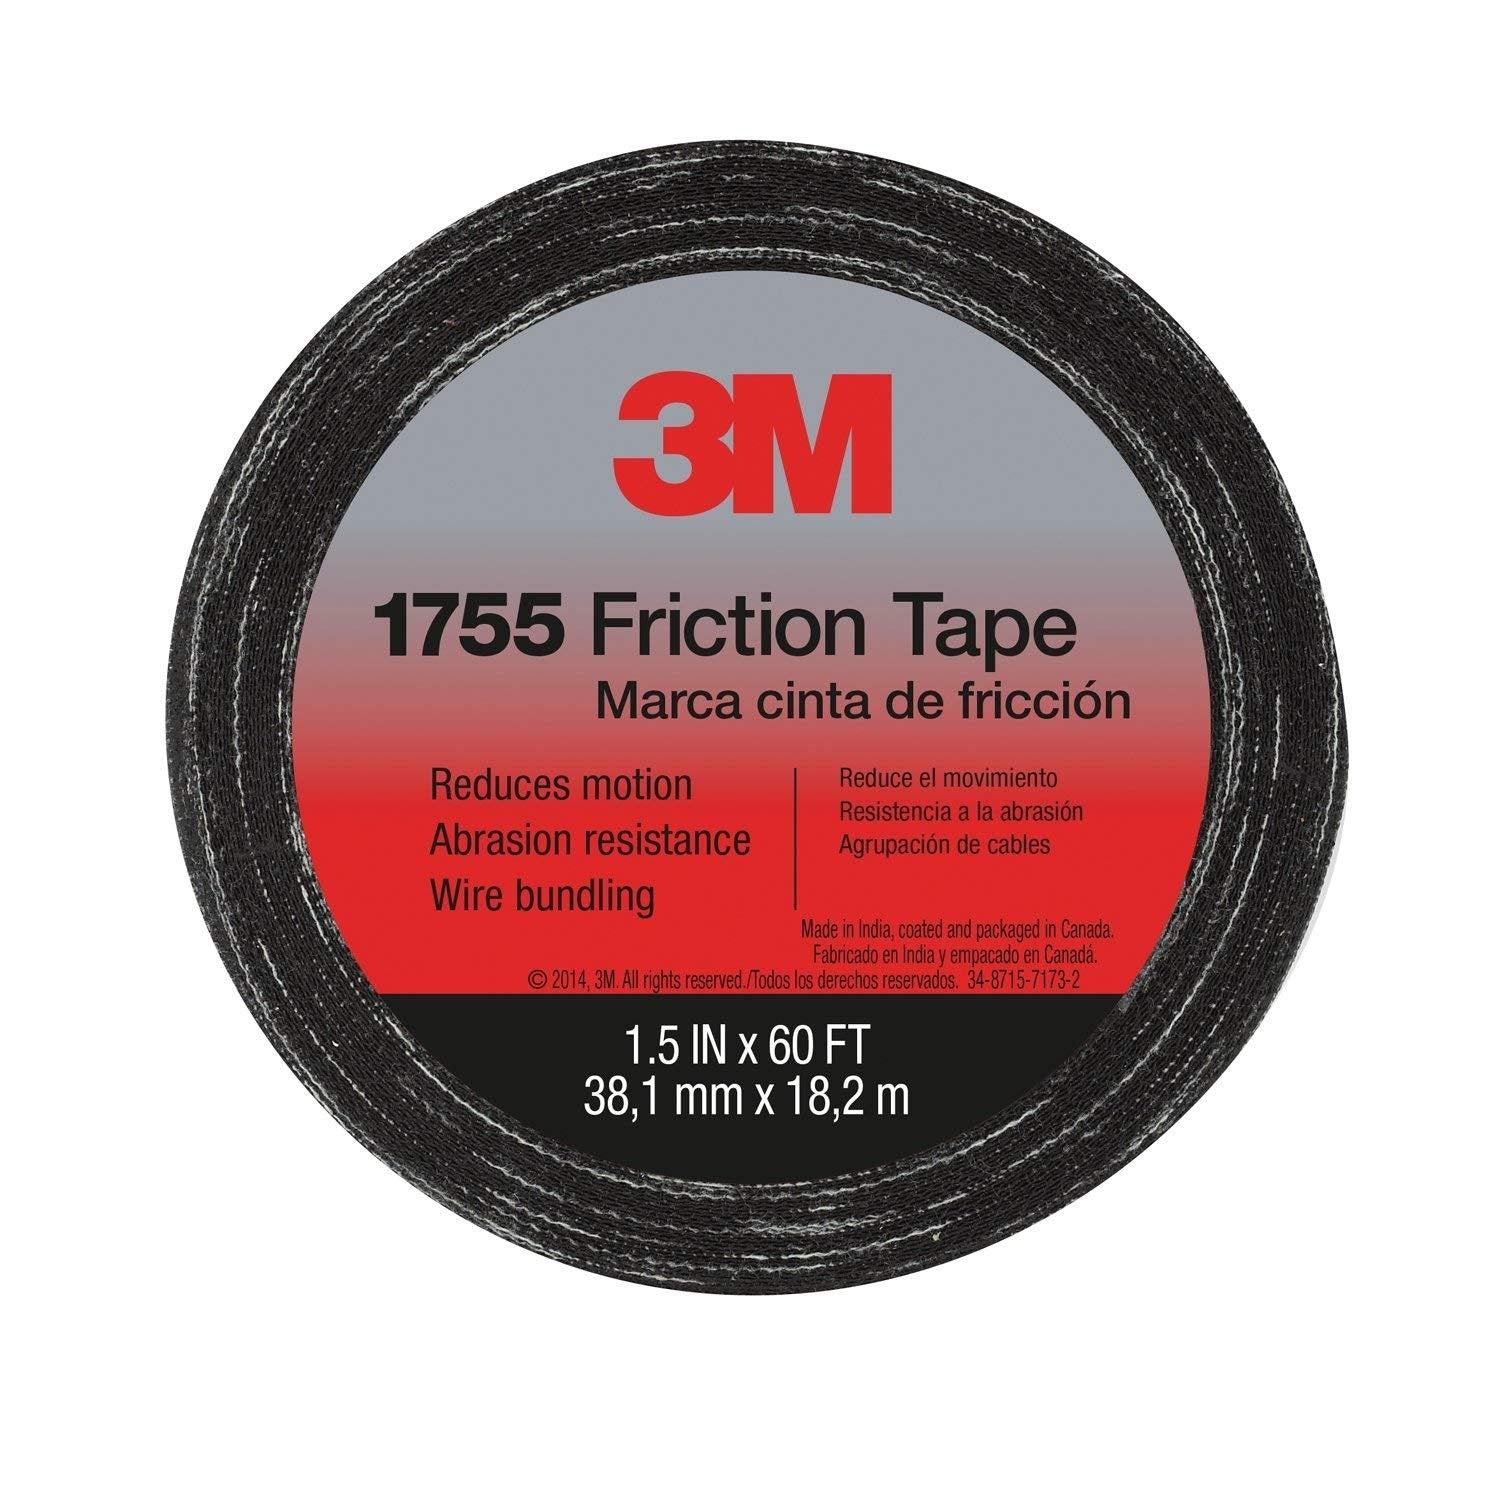 3M 57173-S-10 Temflex Friction Tape 1755, Black, 1.5 Inches X 60 Feet